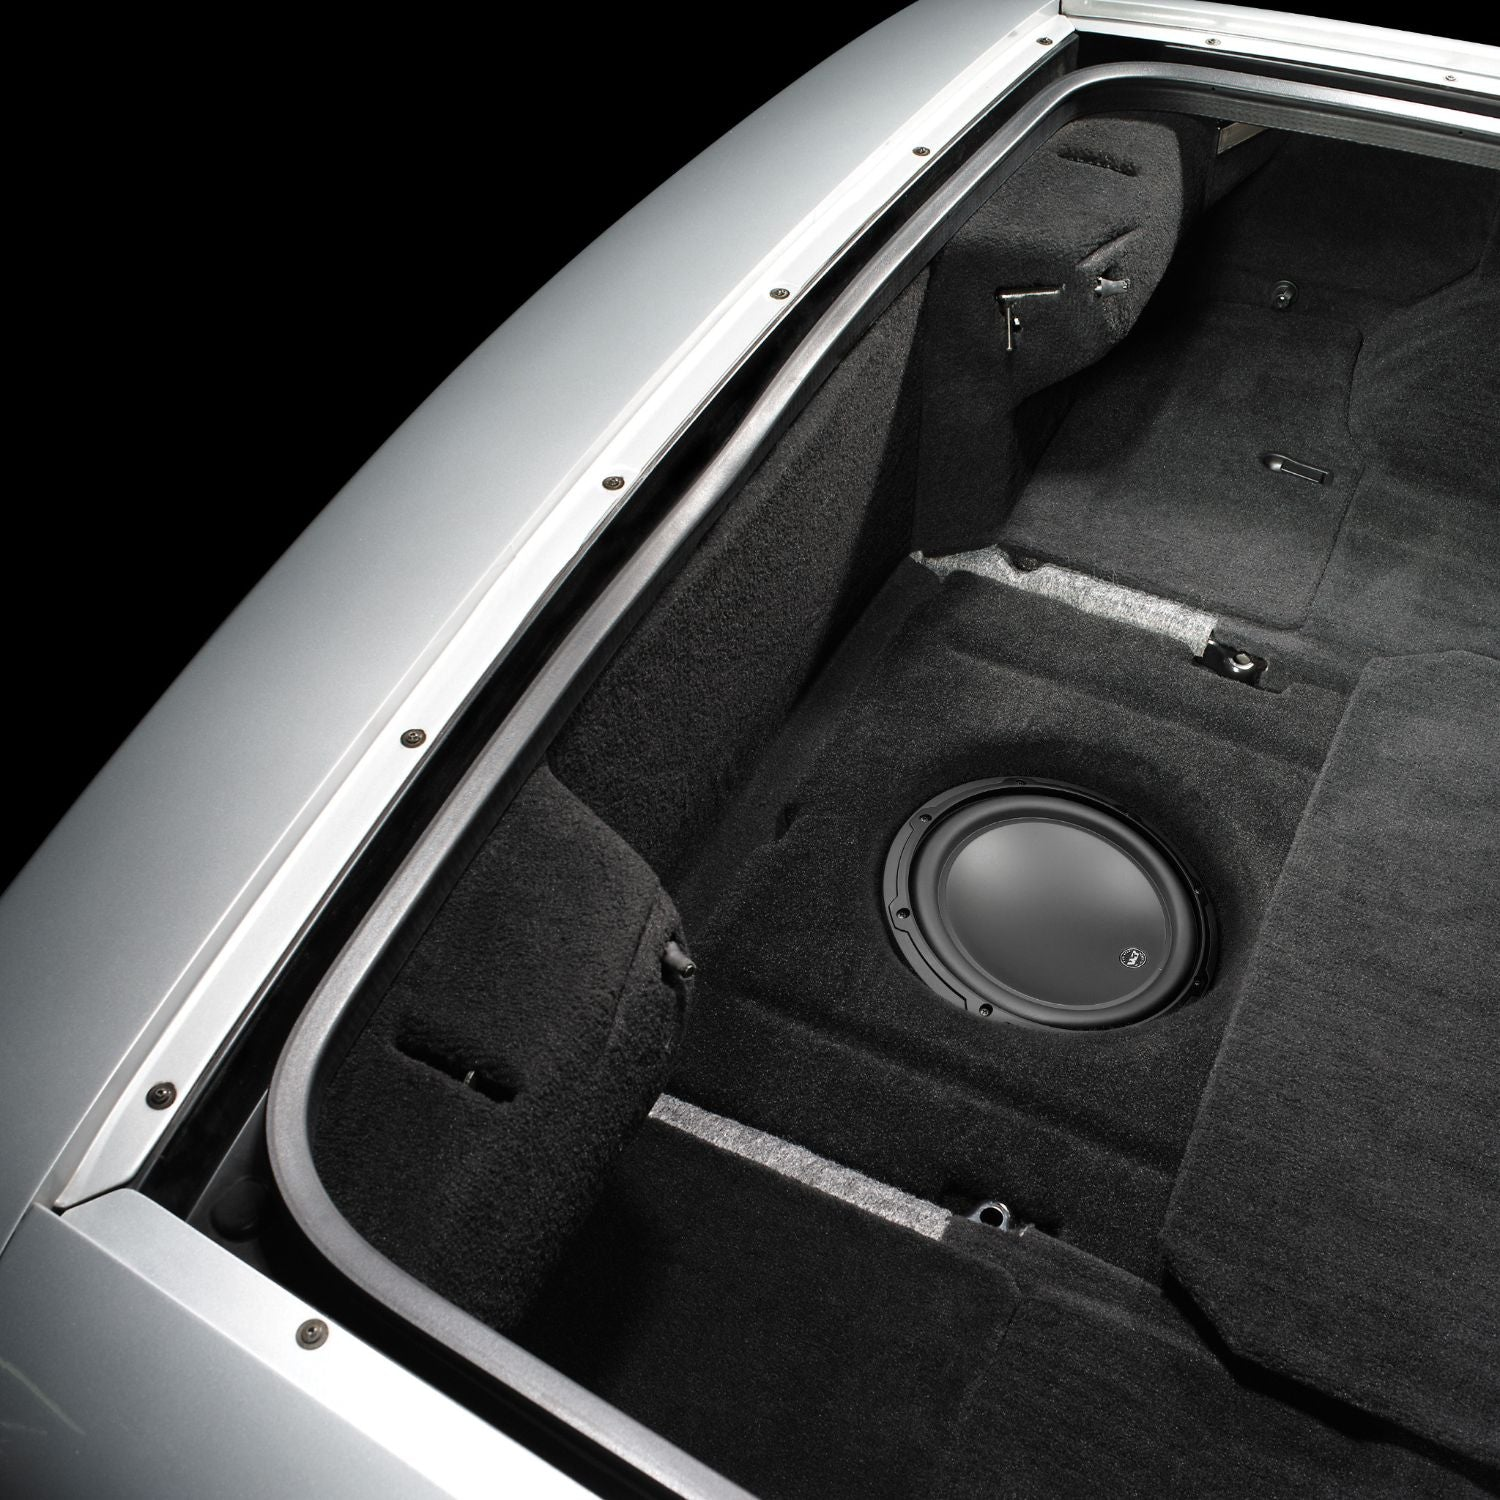 SB-GM-VET-10W3v3 Stealthbox Installed in Vehicle